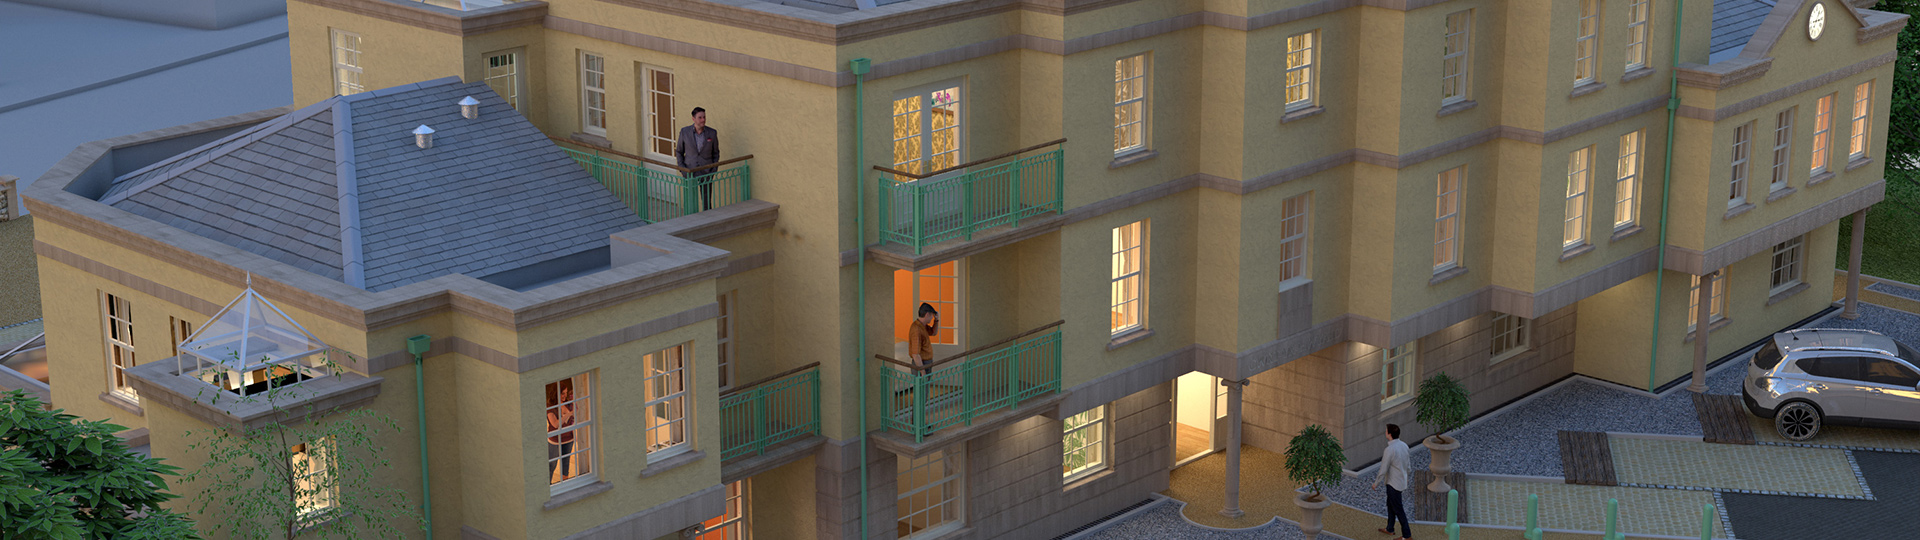 Architectural 3d Visualization of apartment block